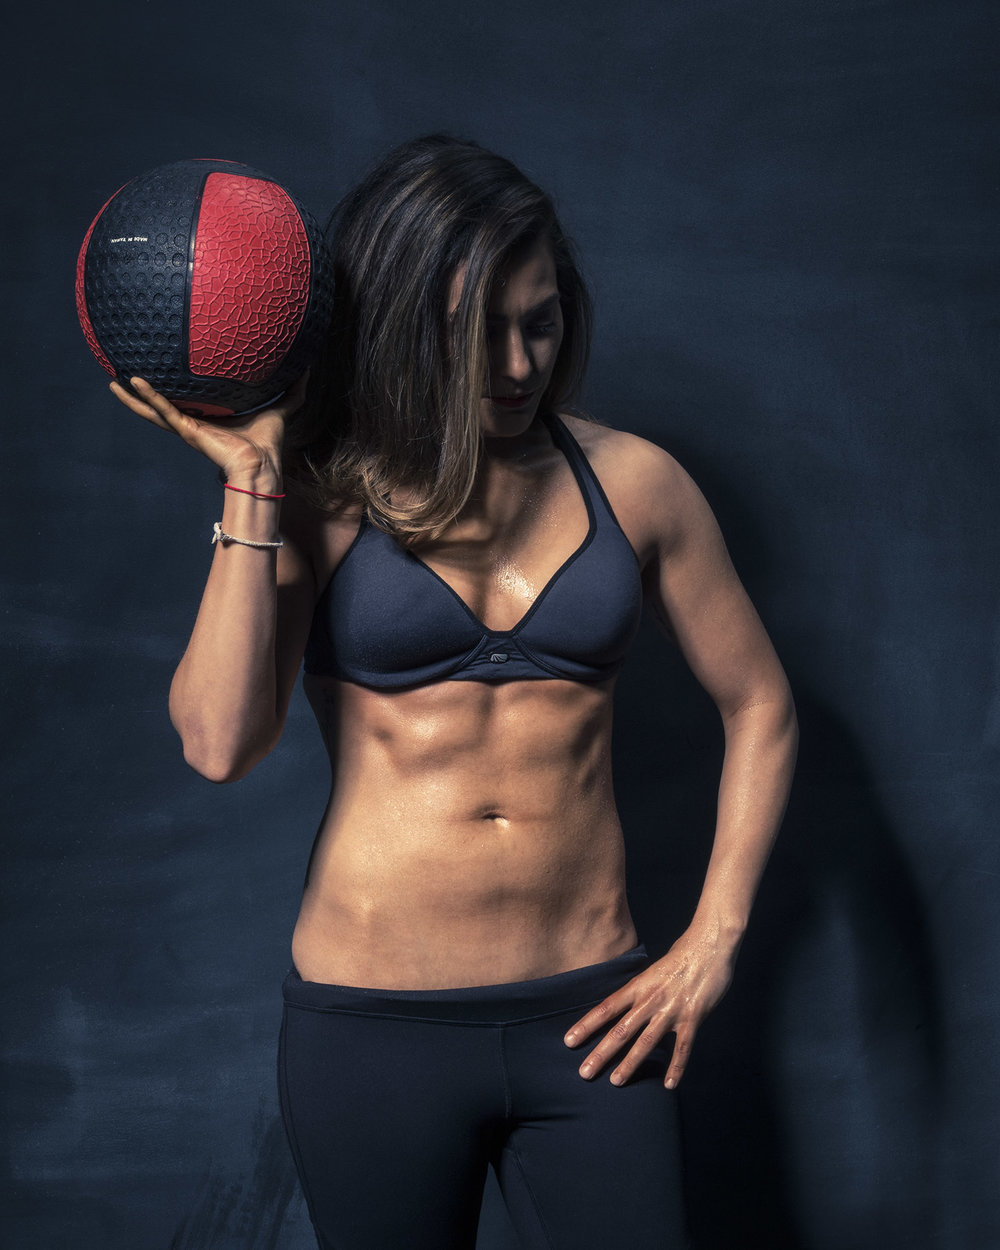 Toronto fitness model and personal trainer Bianca posing in studio showing off her abs.